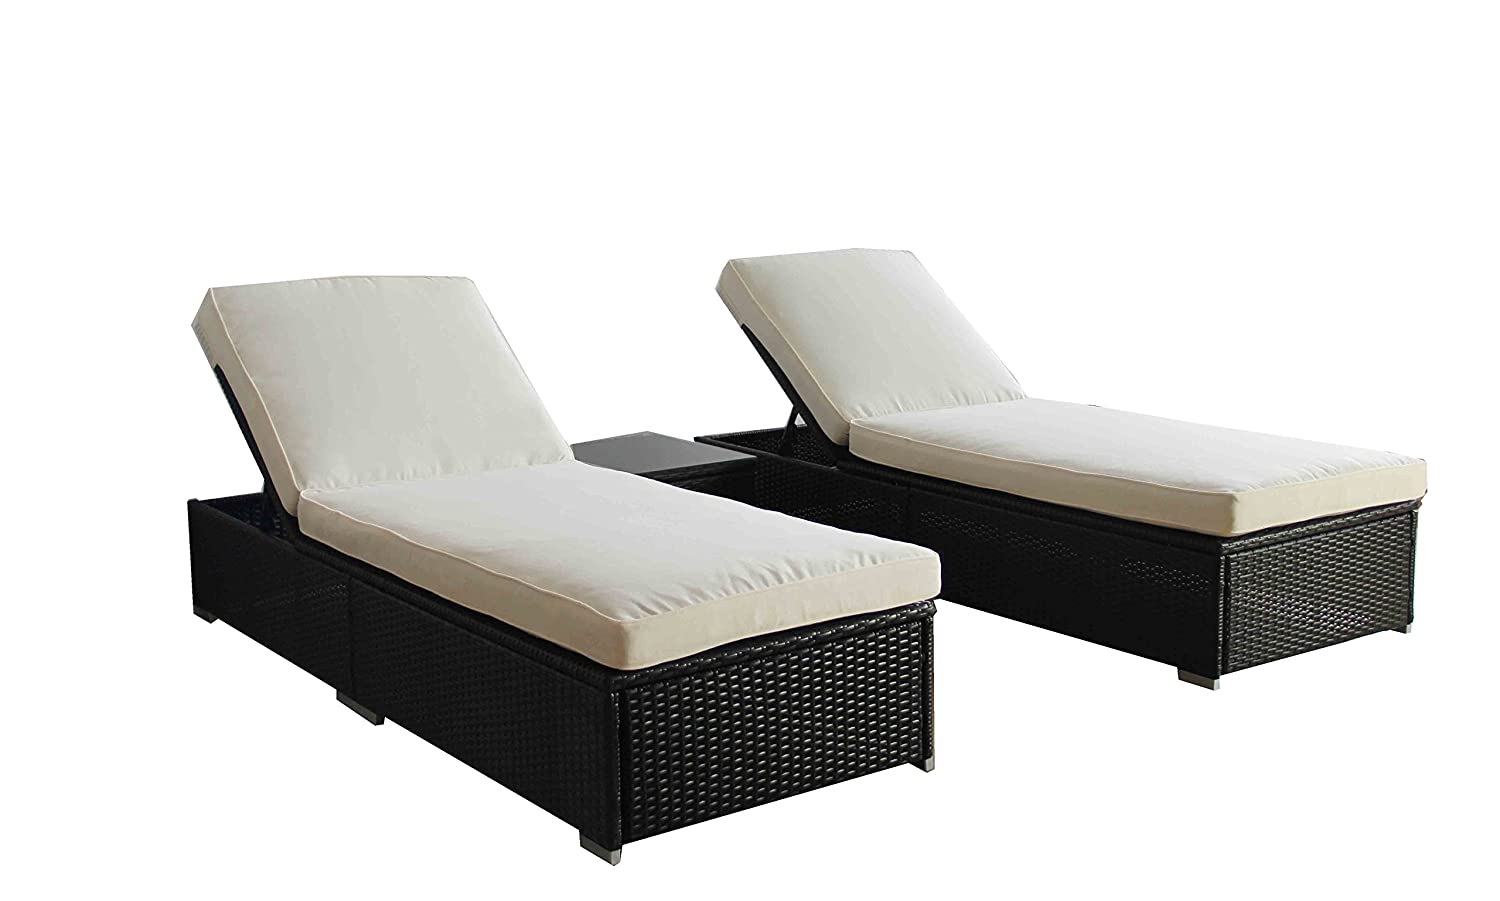 Rattan lounge  Amazon.com : Outdoor Rattan Lounge Set 3 Pcs Sofa Wicker Sectional ...